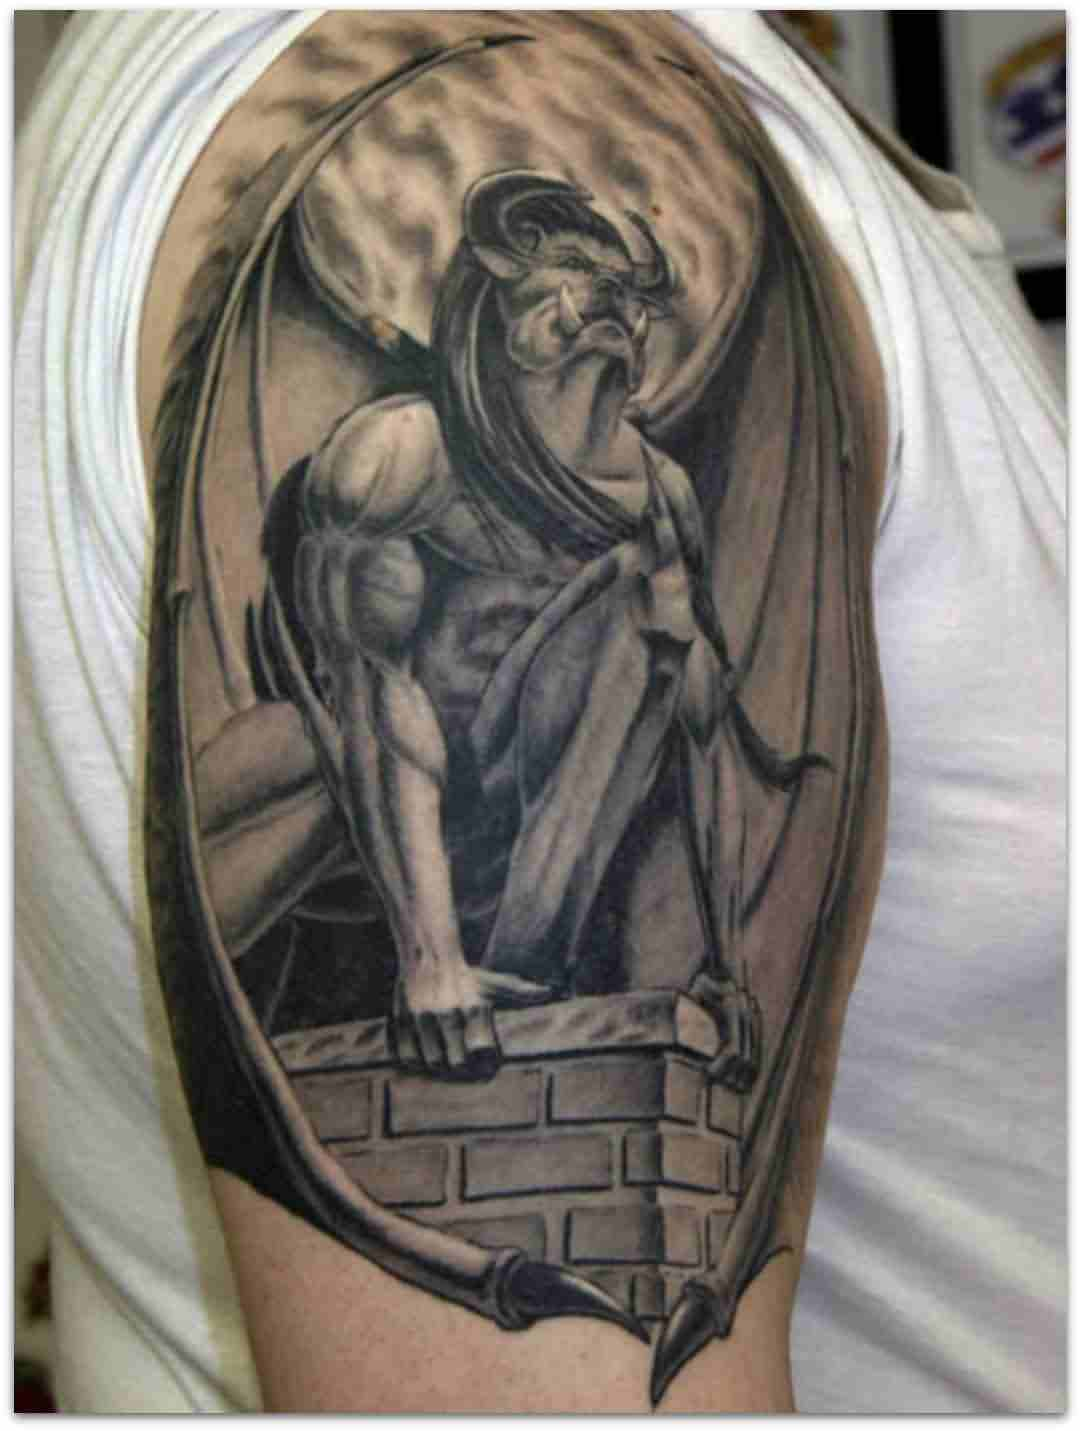 3D Gargoyle Sitting On Wall Tattoo On Shoulder